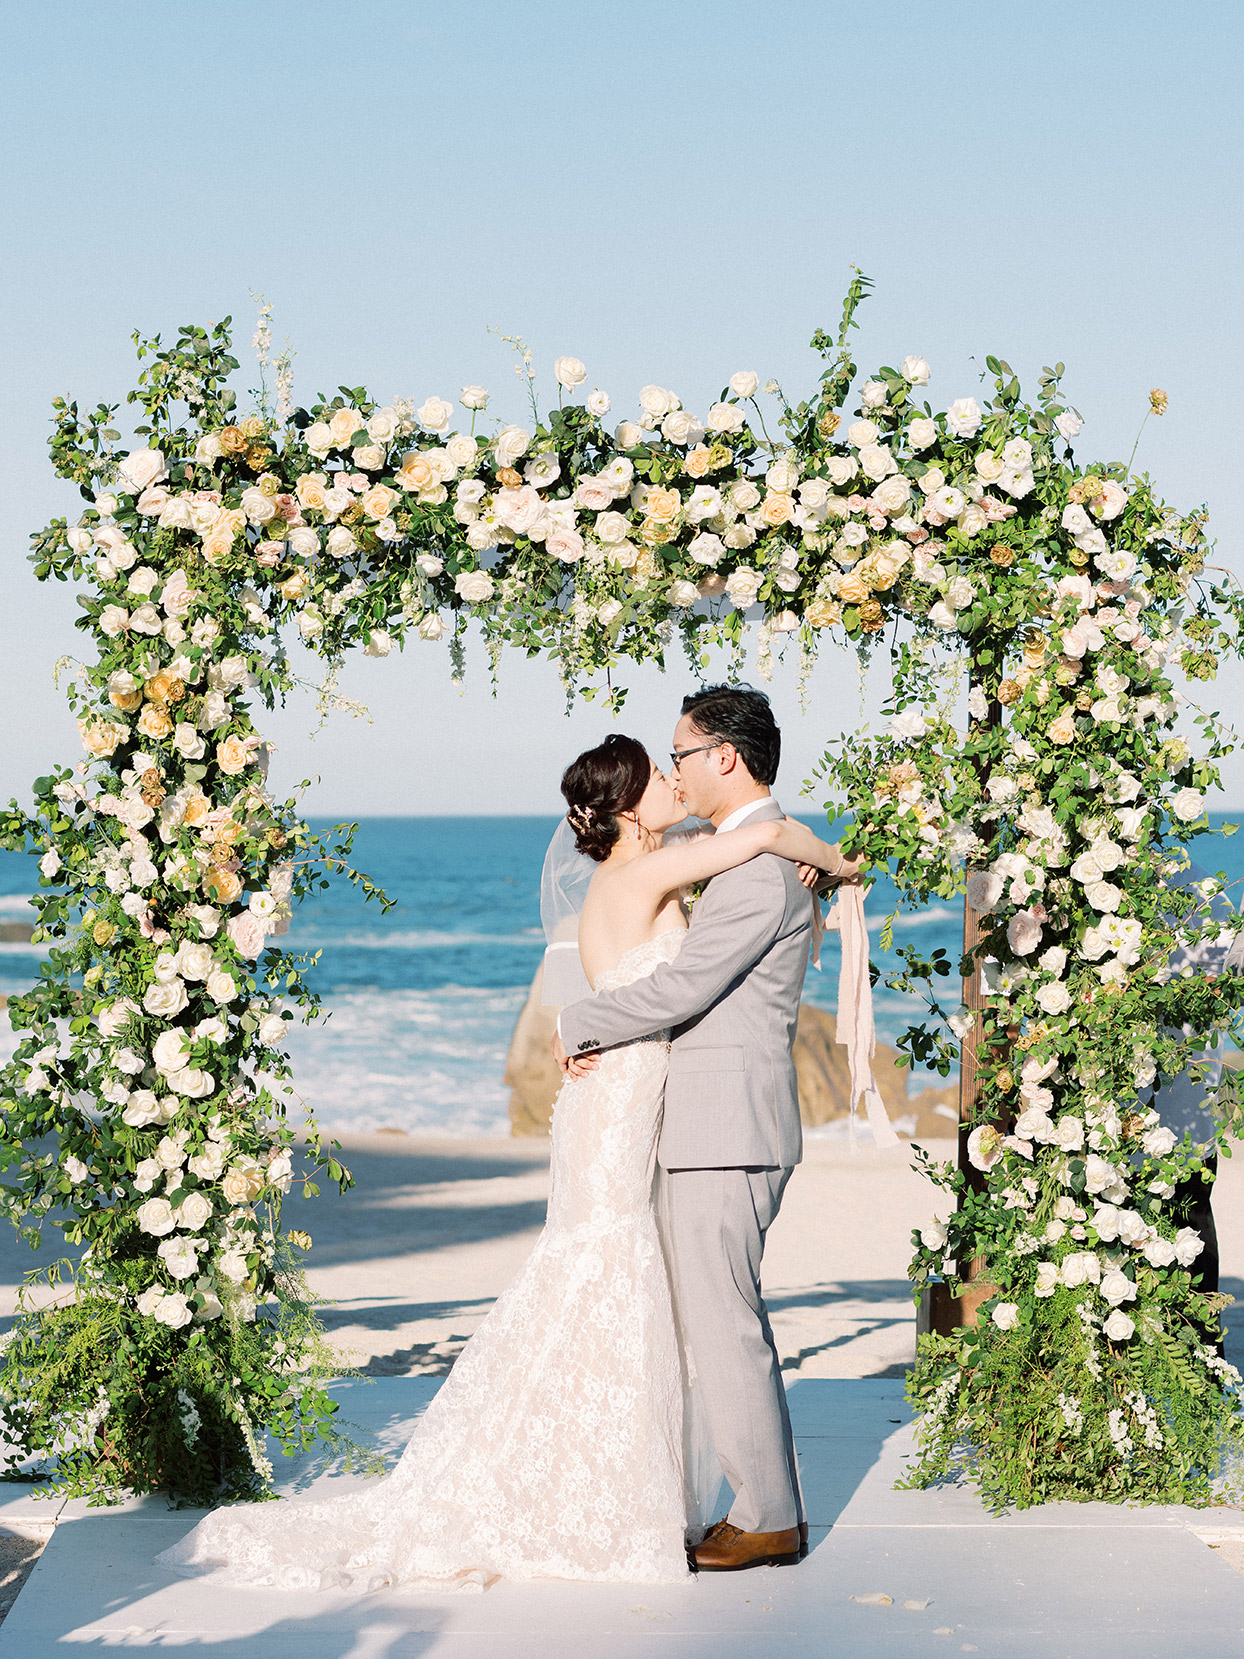 kirsten deran wedding ceremony kiss in front of floral arch